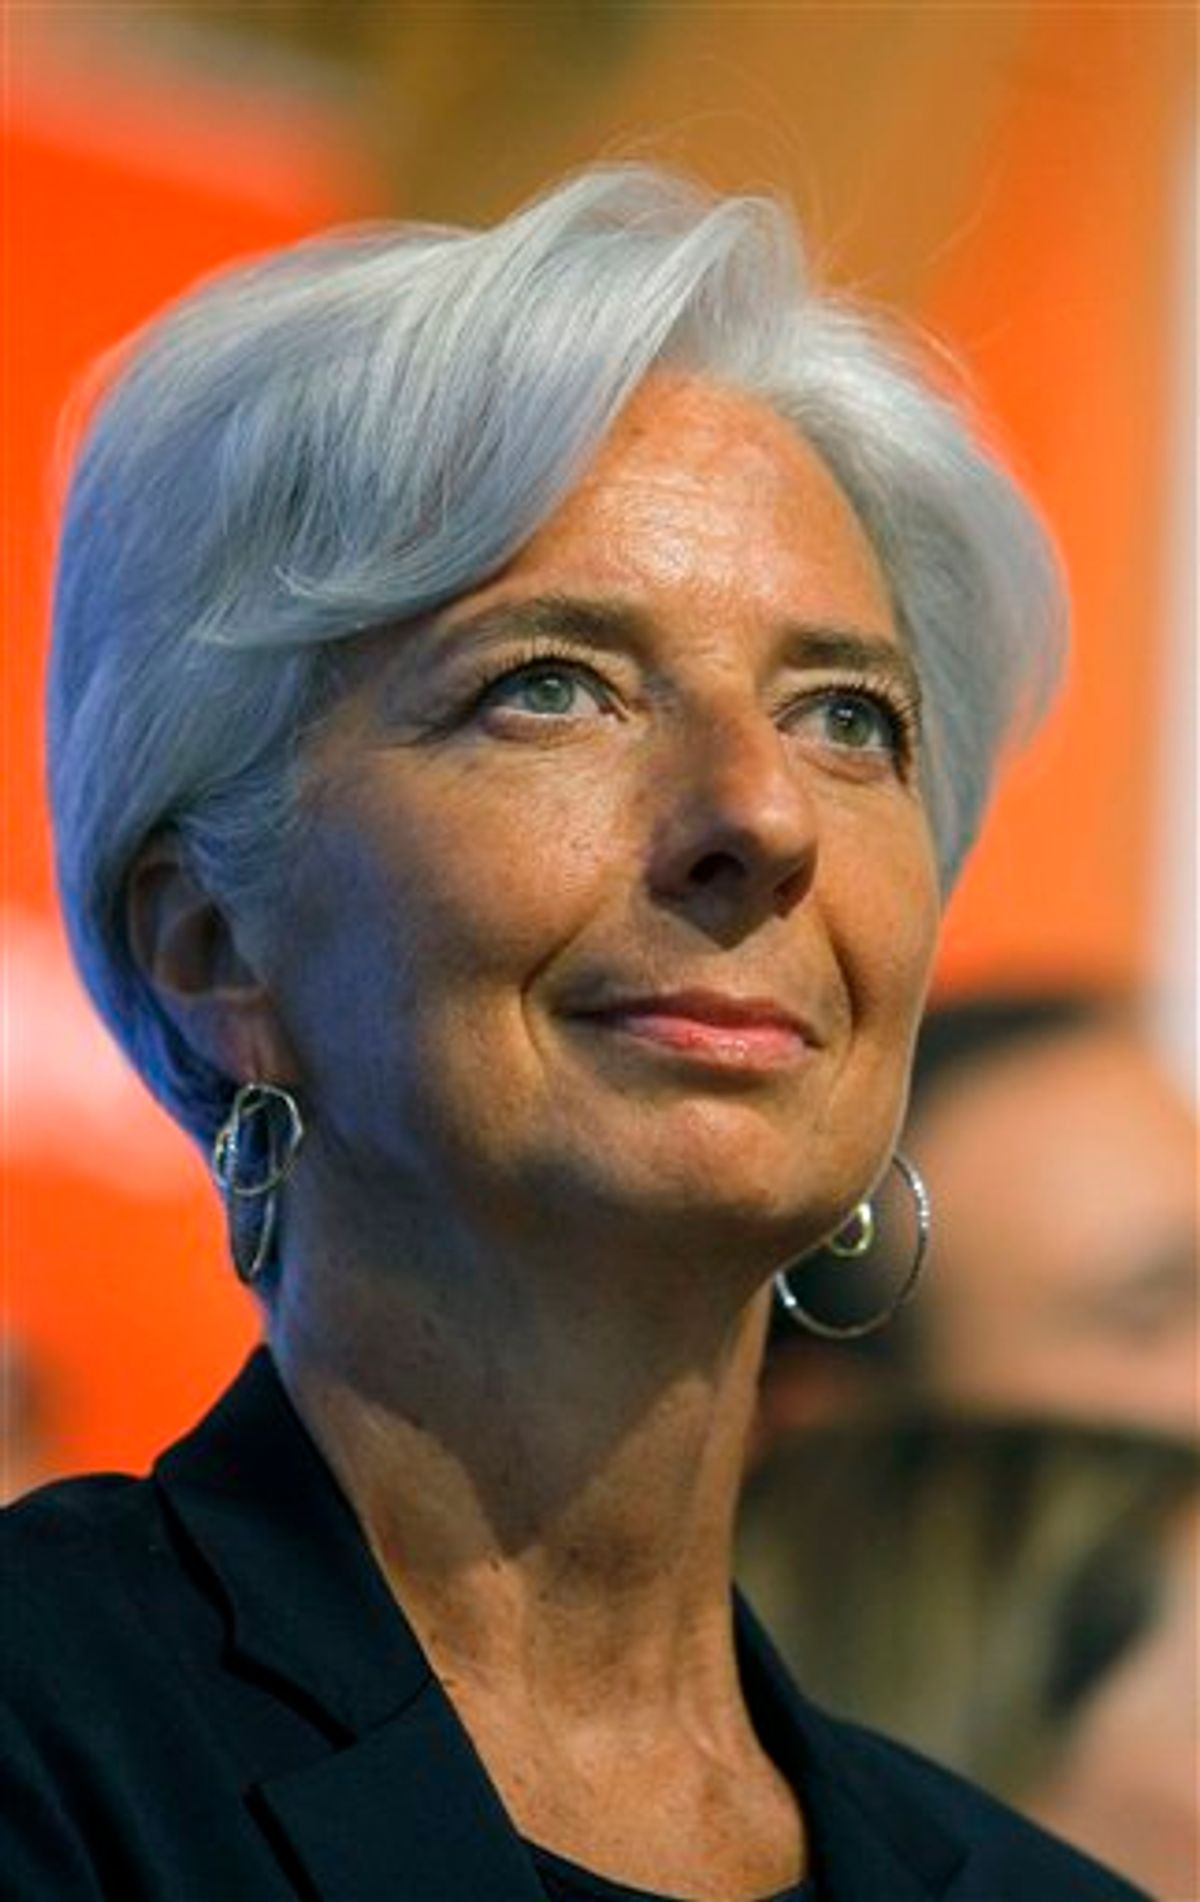 France's Finance and Economy Minister Christine Lagarde is seen during the ringing of the opening bell at the Paris Euronext opening day Tuesday, May 24, 2011. Momentum grew for  Lagarde's potential candidacy to the top job at the IMF, with the Netherlands becoming the latest European government to offer its support. The Frenchwoman, however, kept silent about whether she even wants the job. (AP Photo/Jacques Brinon) (AP)